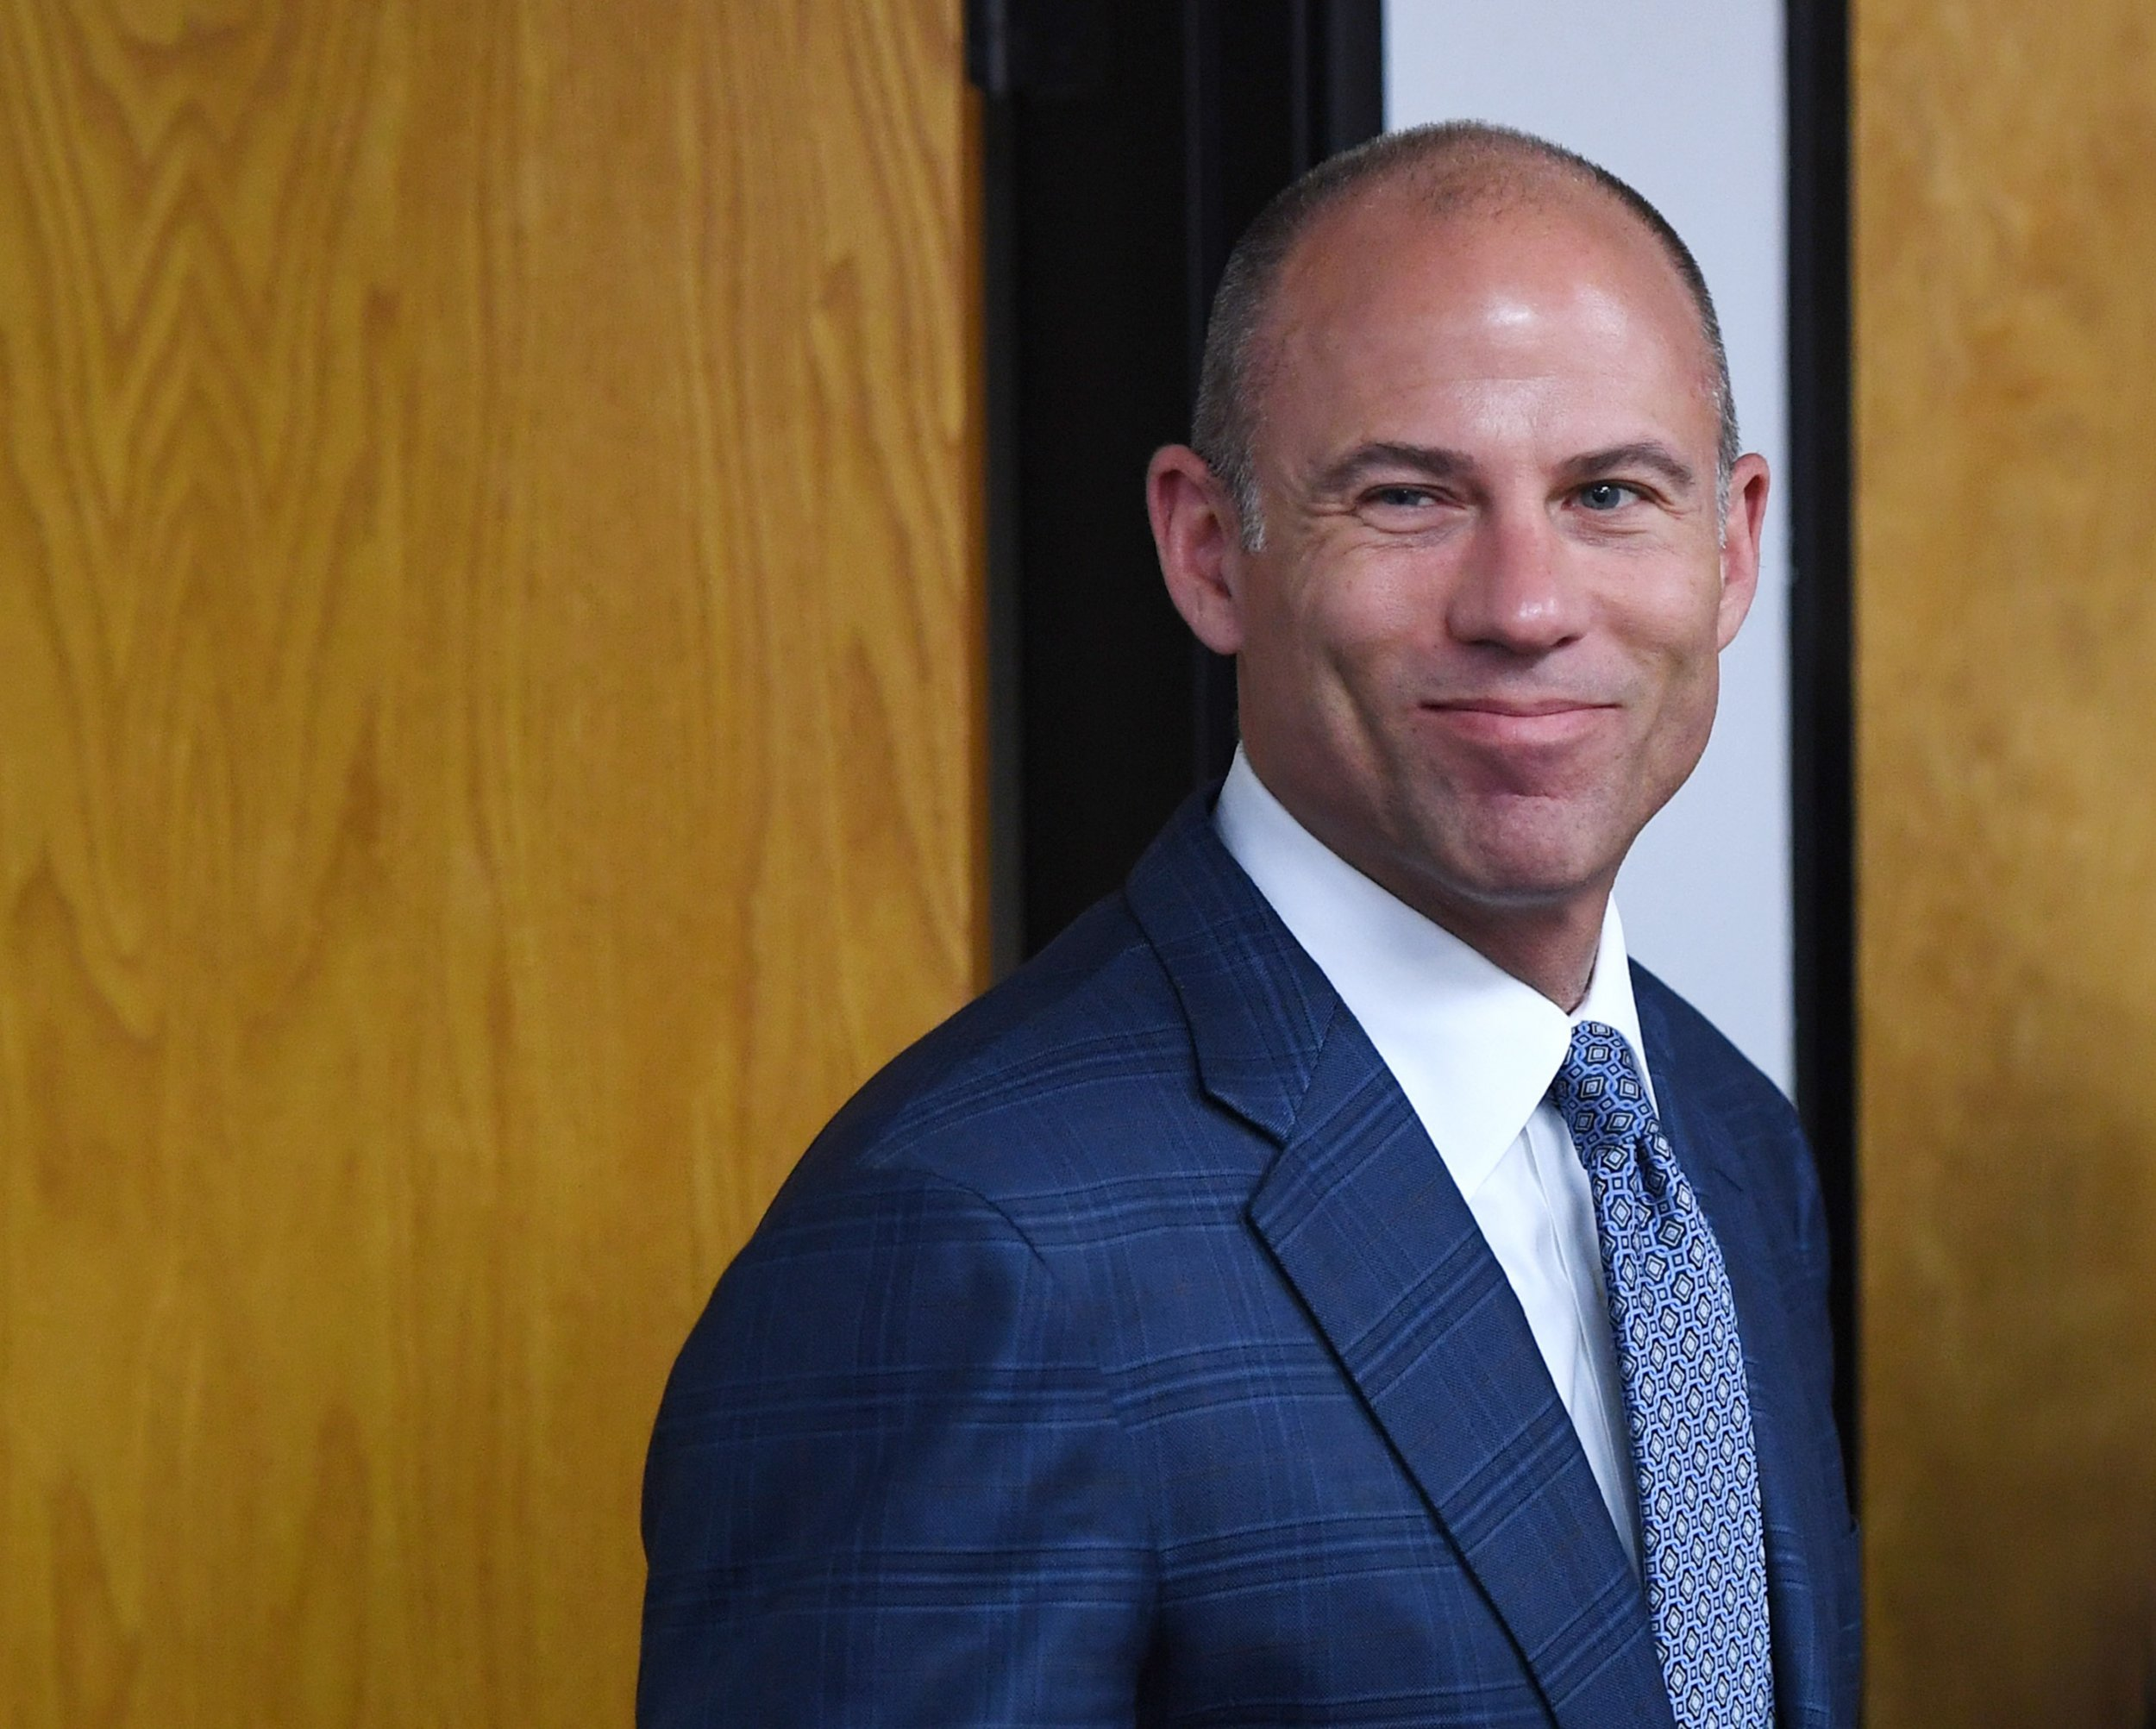 Michael Avenatti Wants to Fight Donald Trump Jr for Charity